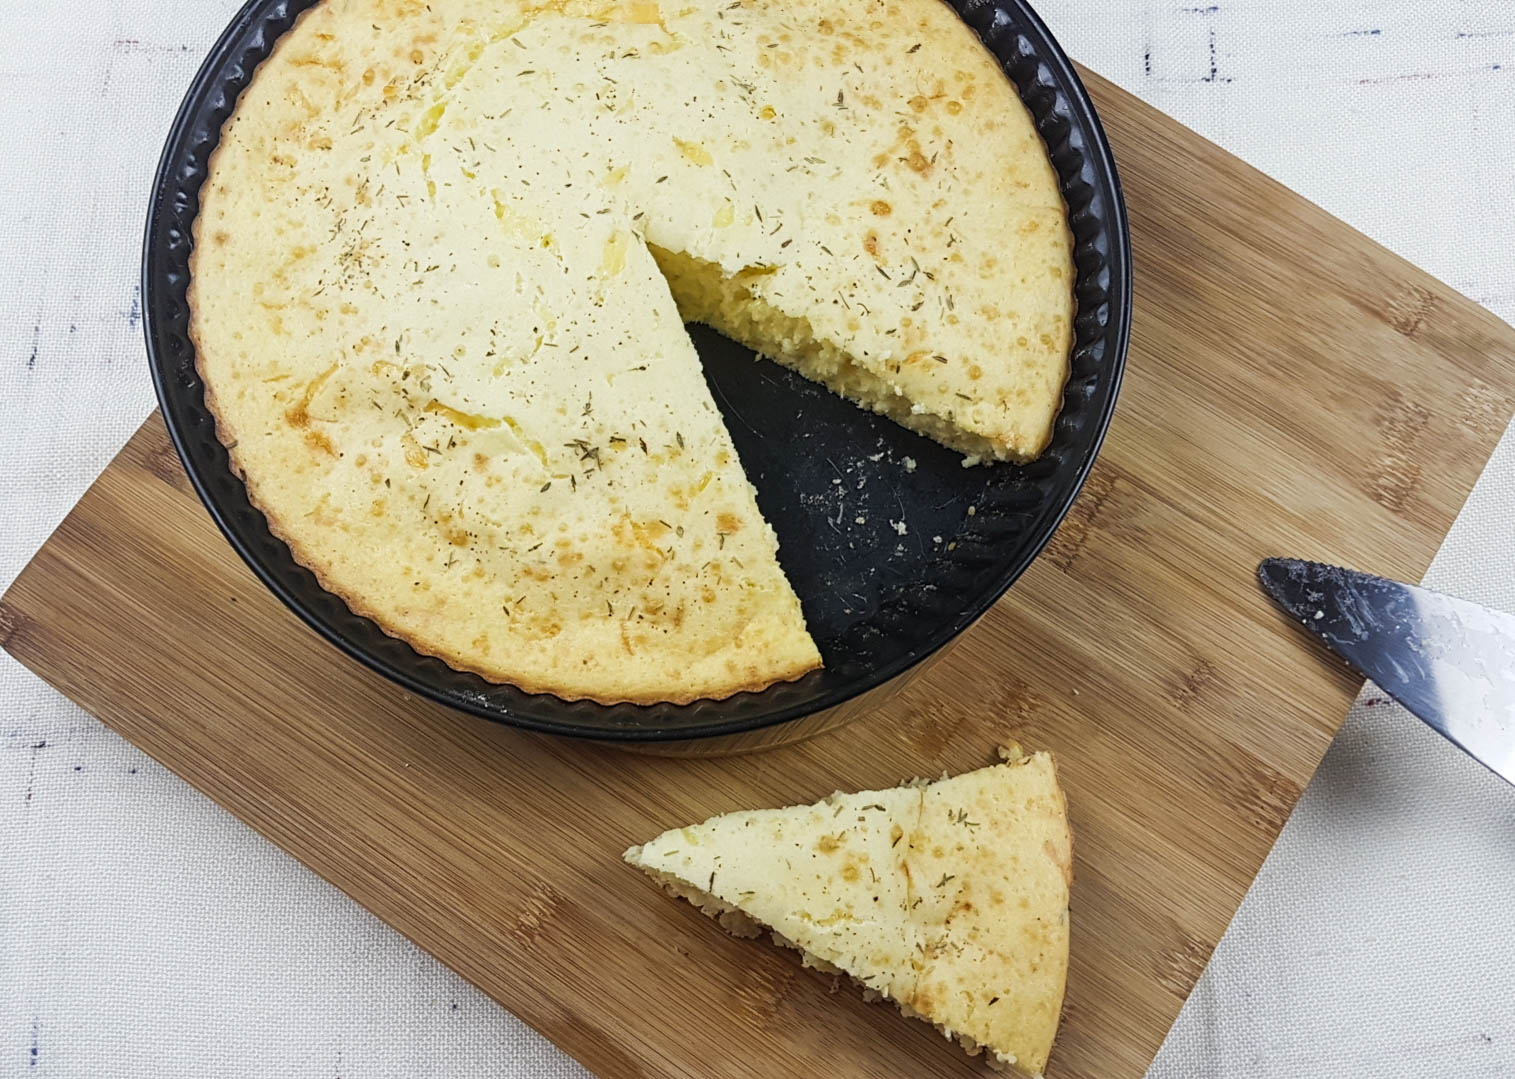 Salty cake with sour milk